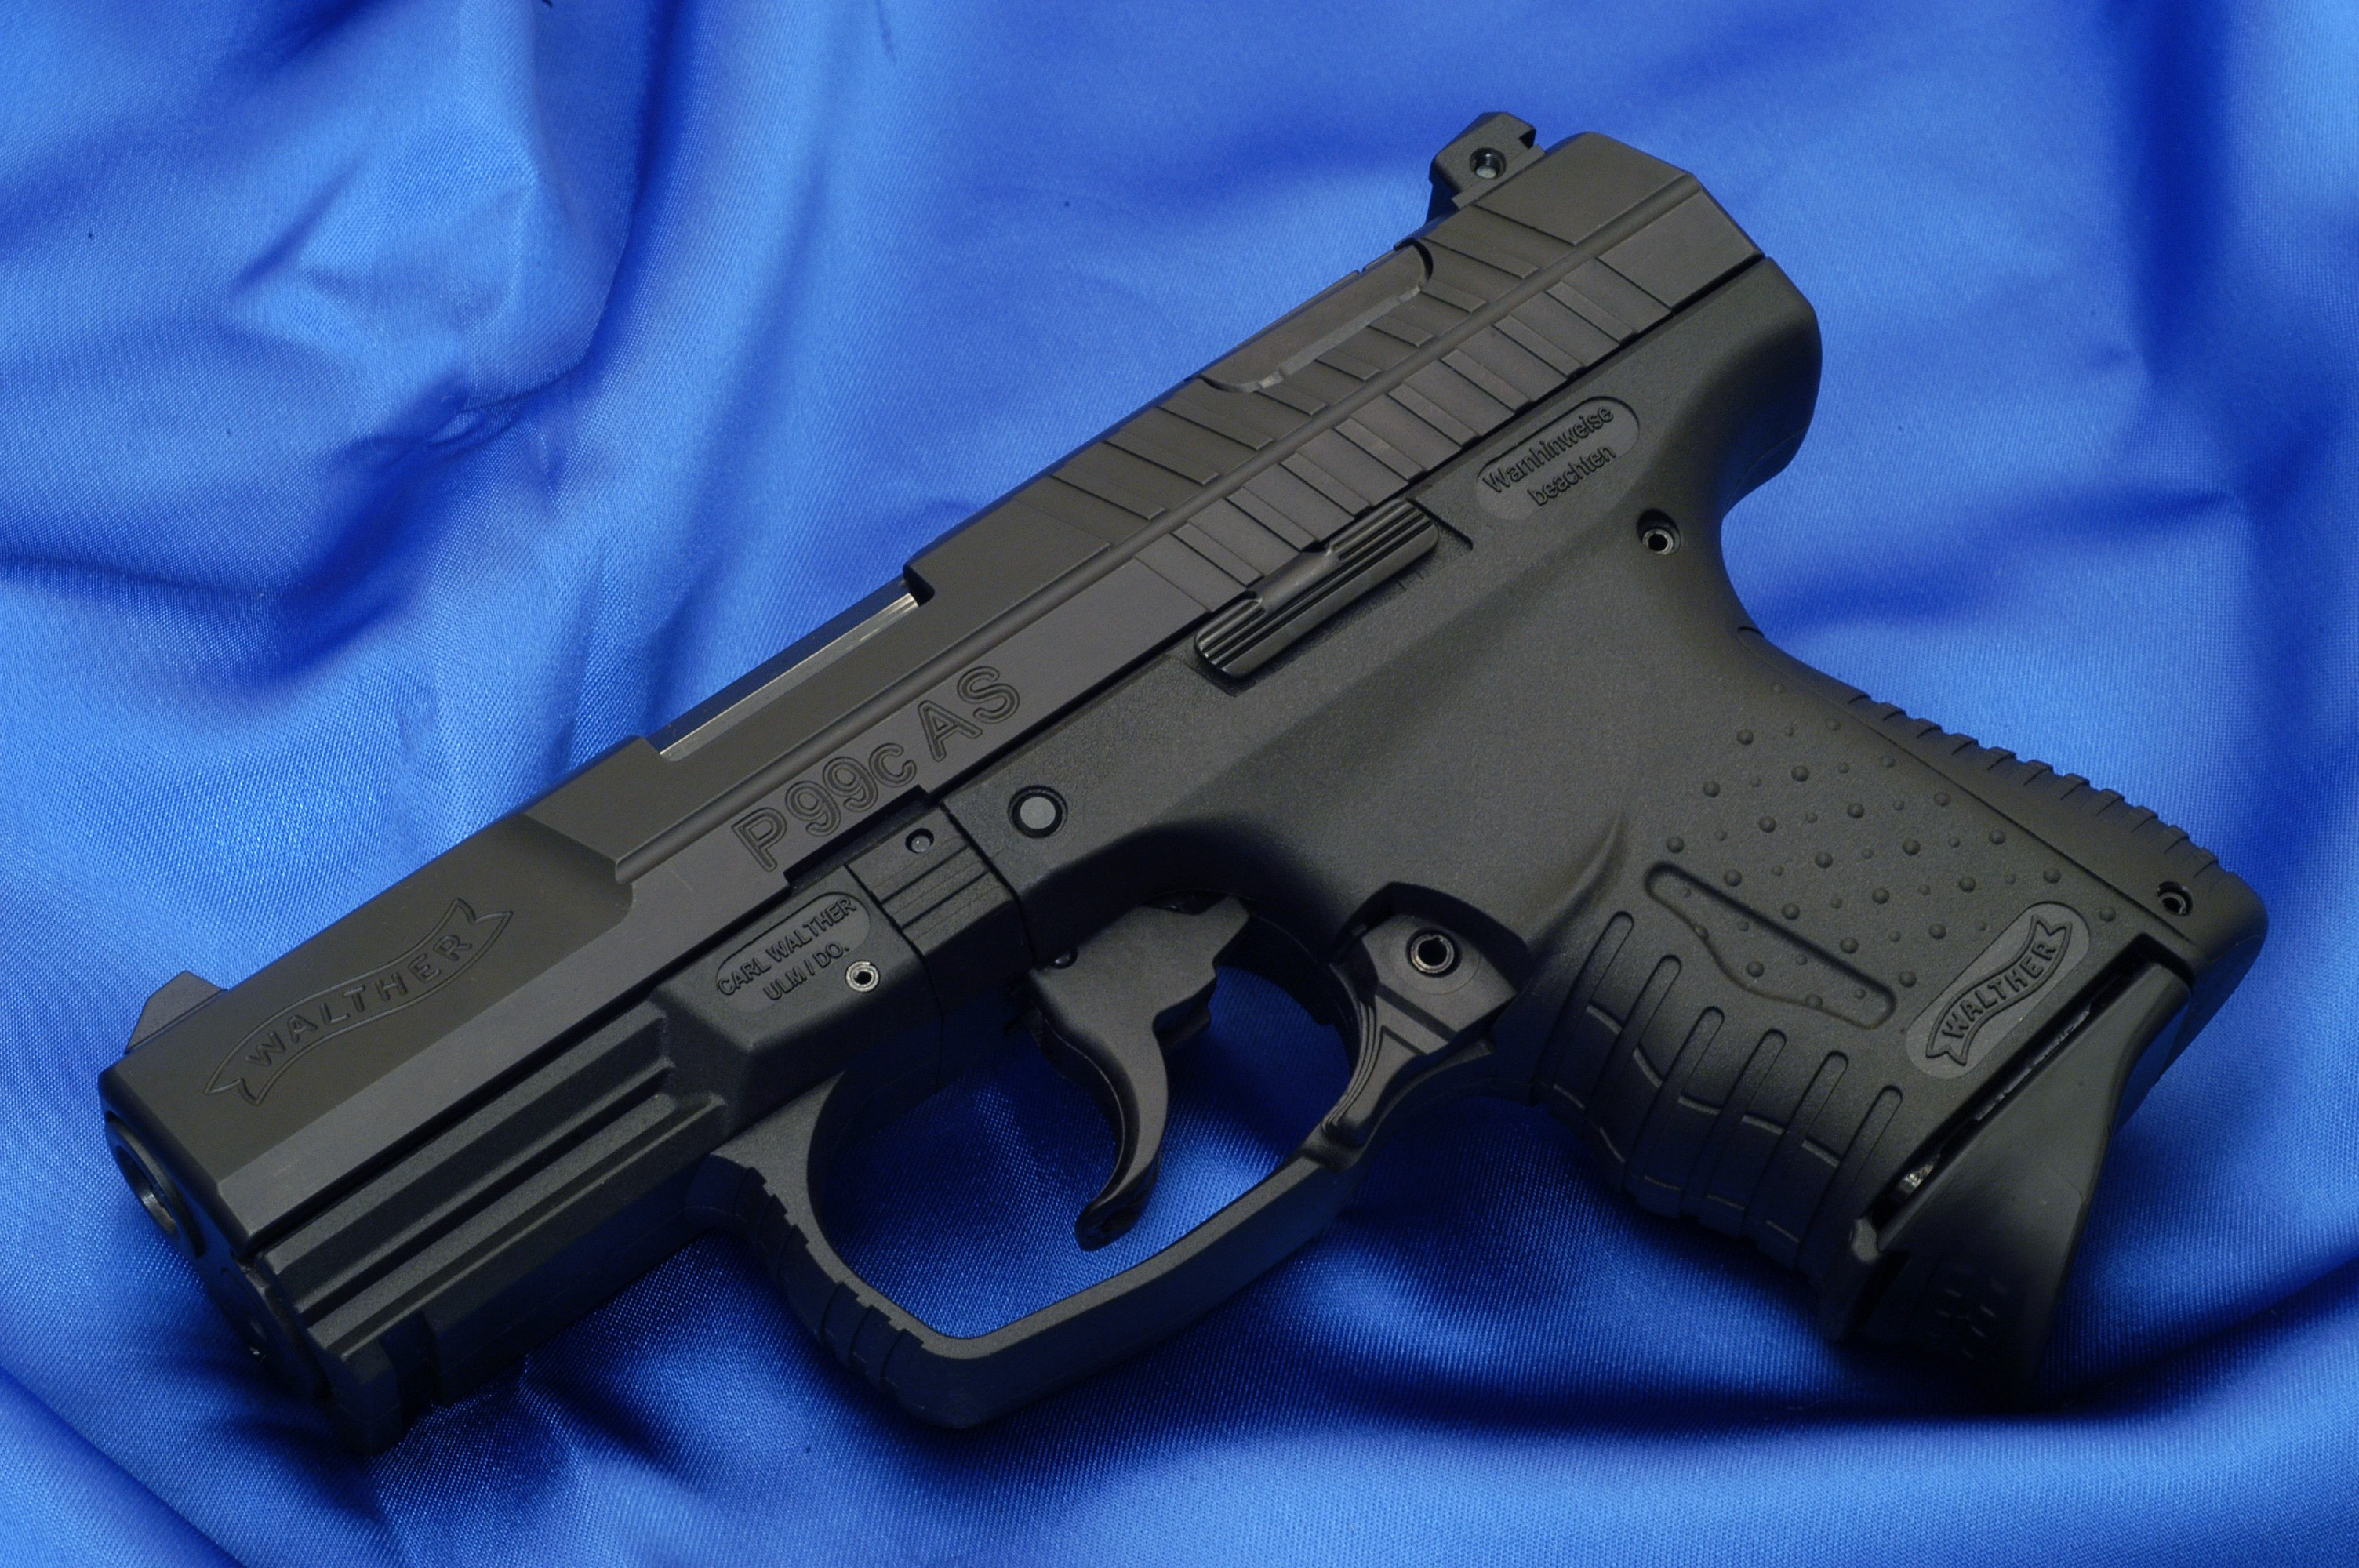 Walther Cp99 Compact Handgun wallpapers, Weapons, HQ Walther